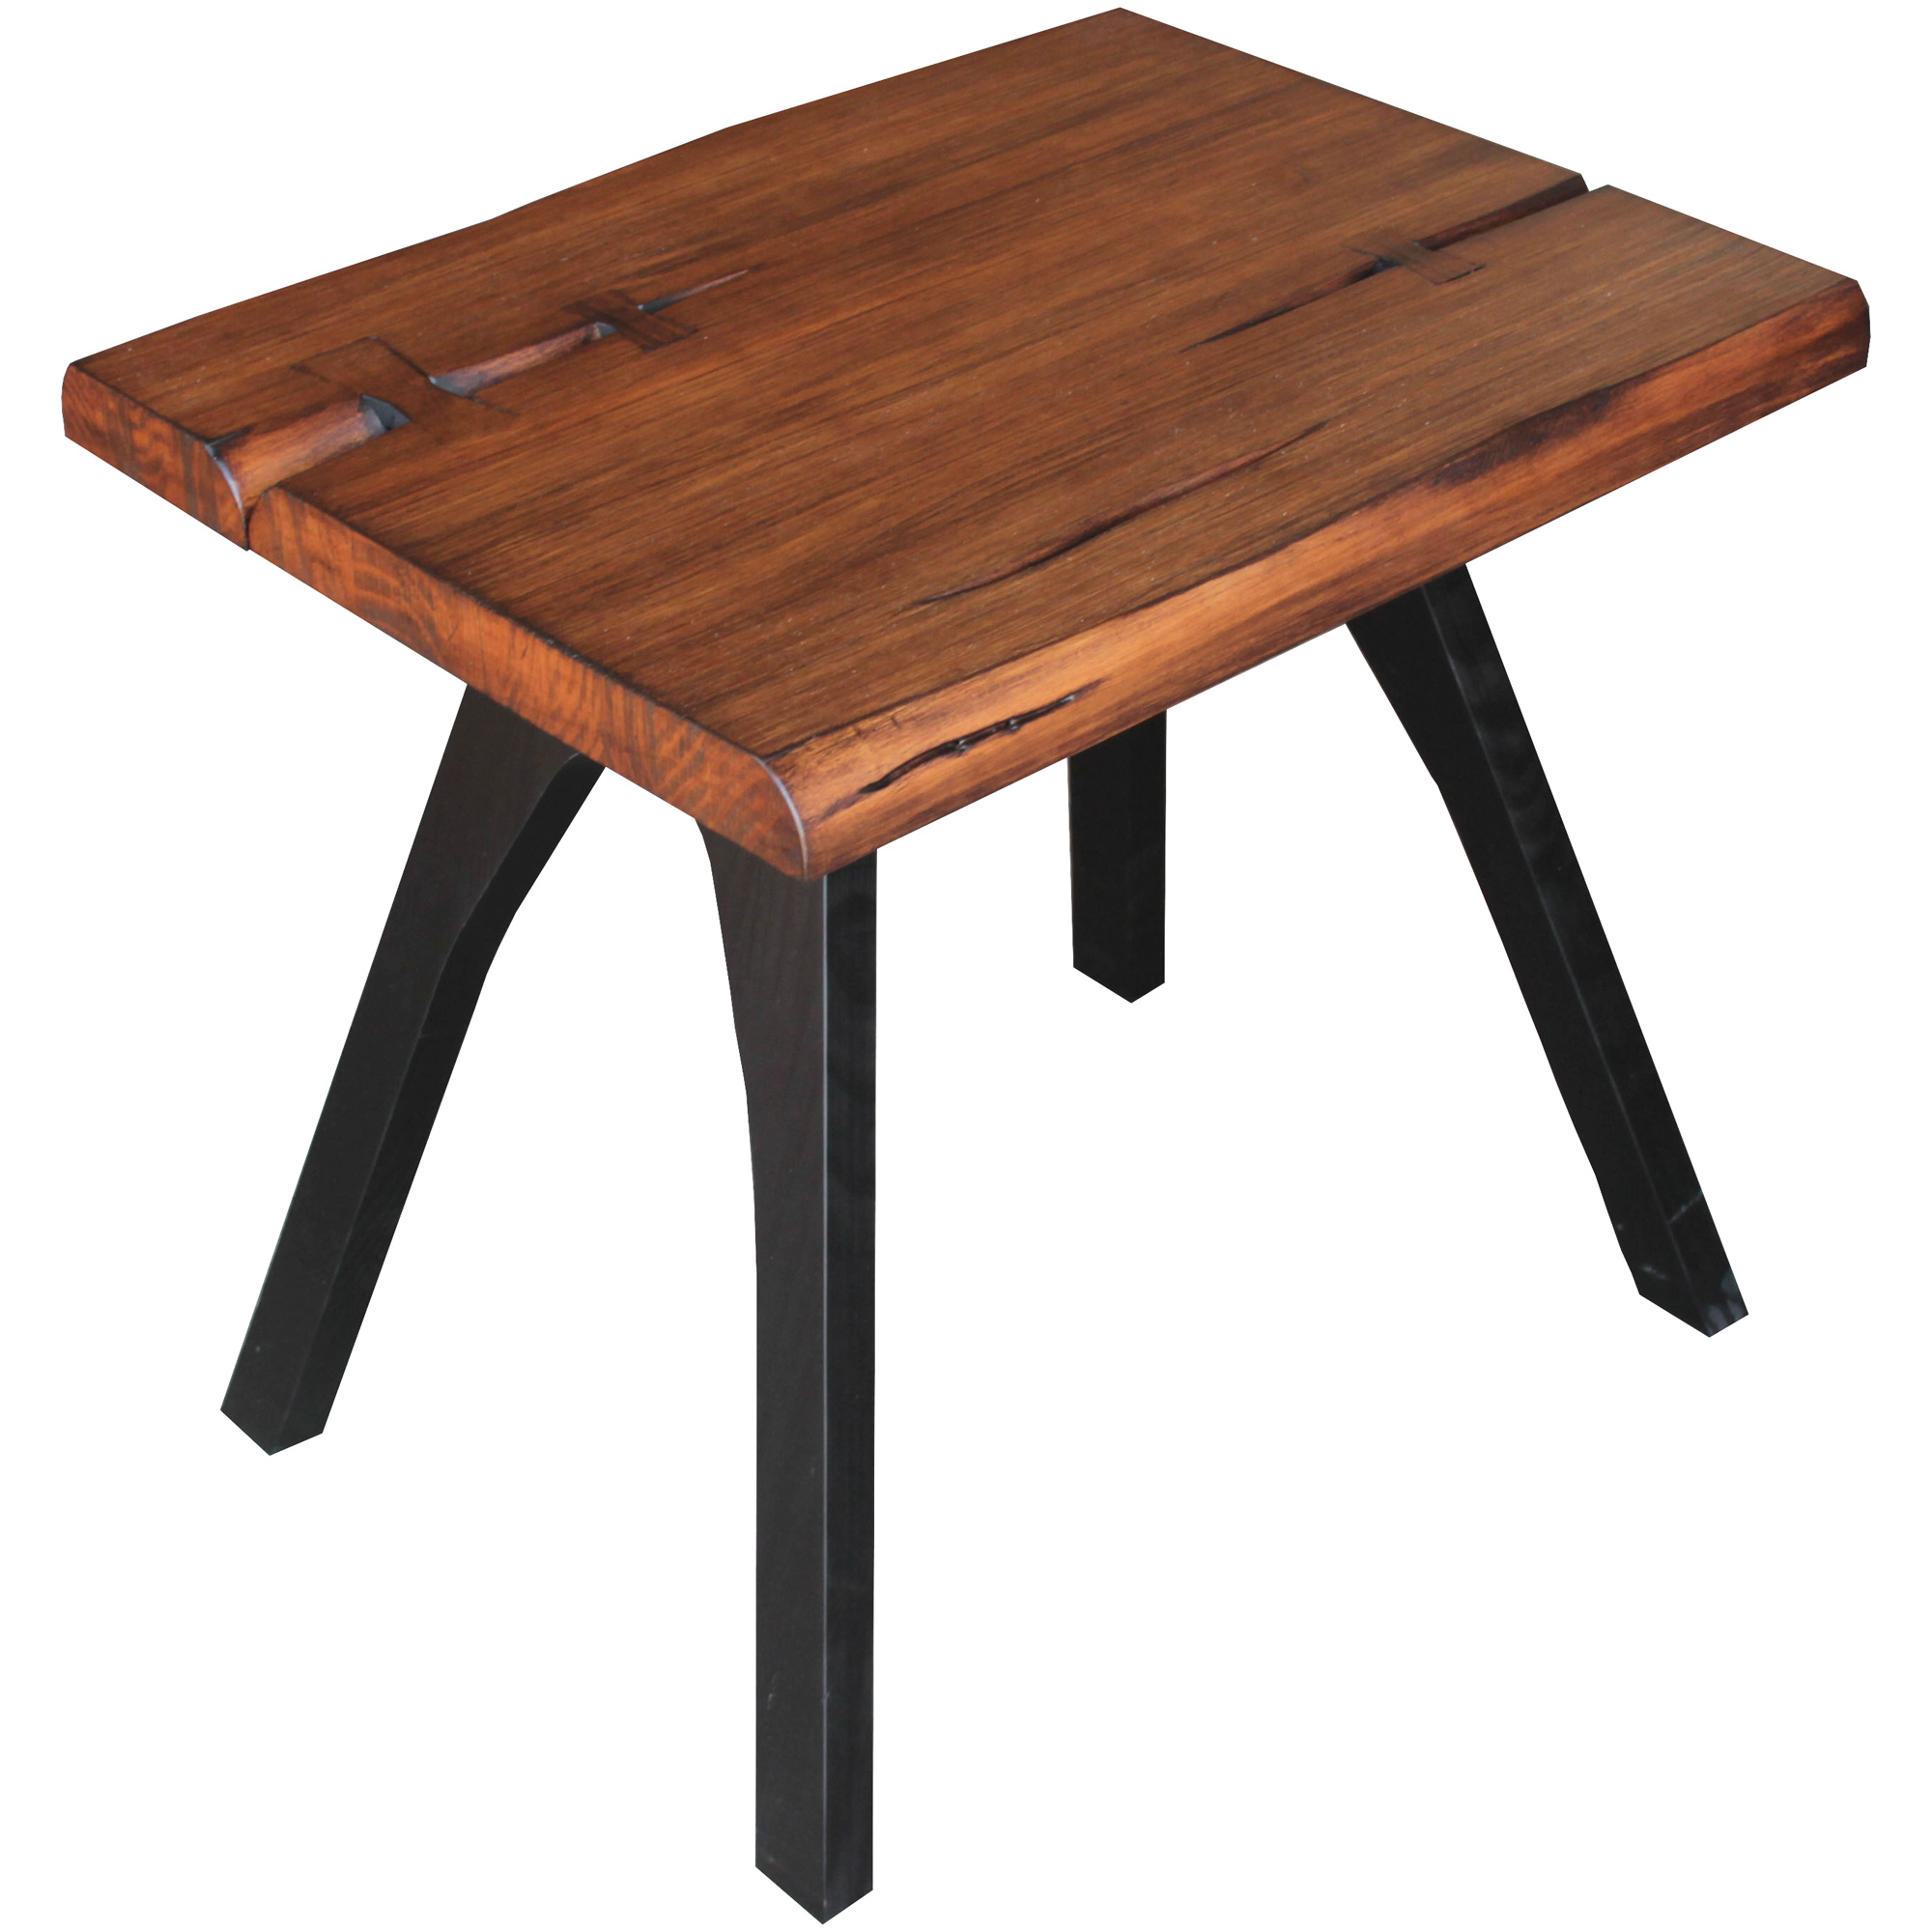 Rotta | Dana Point Rustic Brown End Table